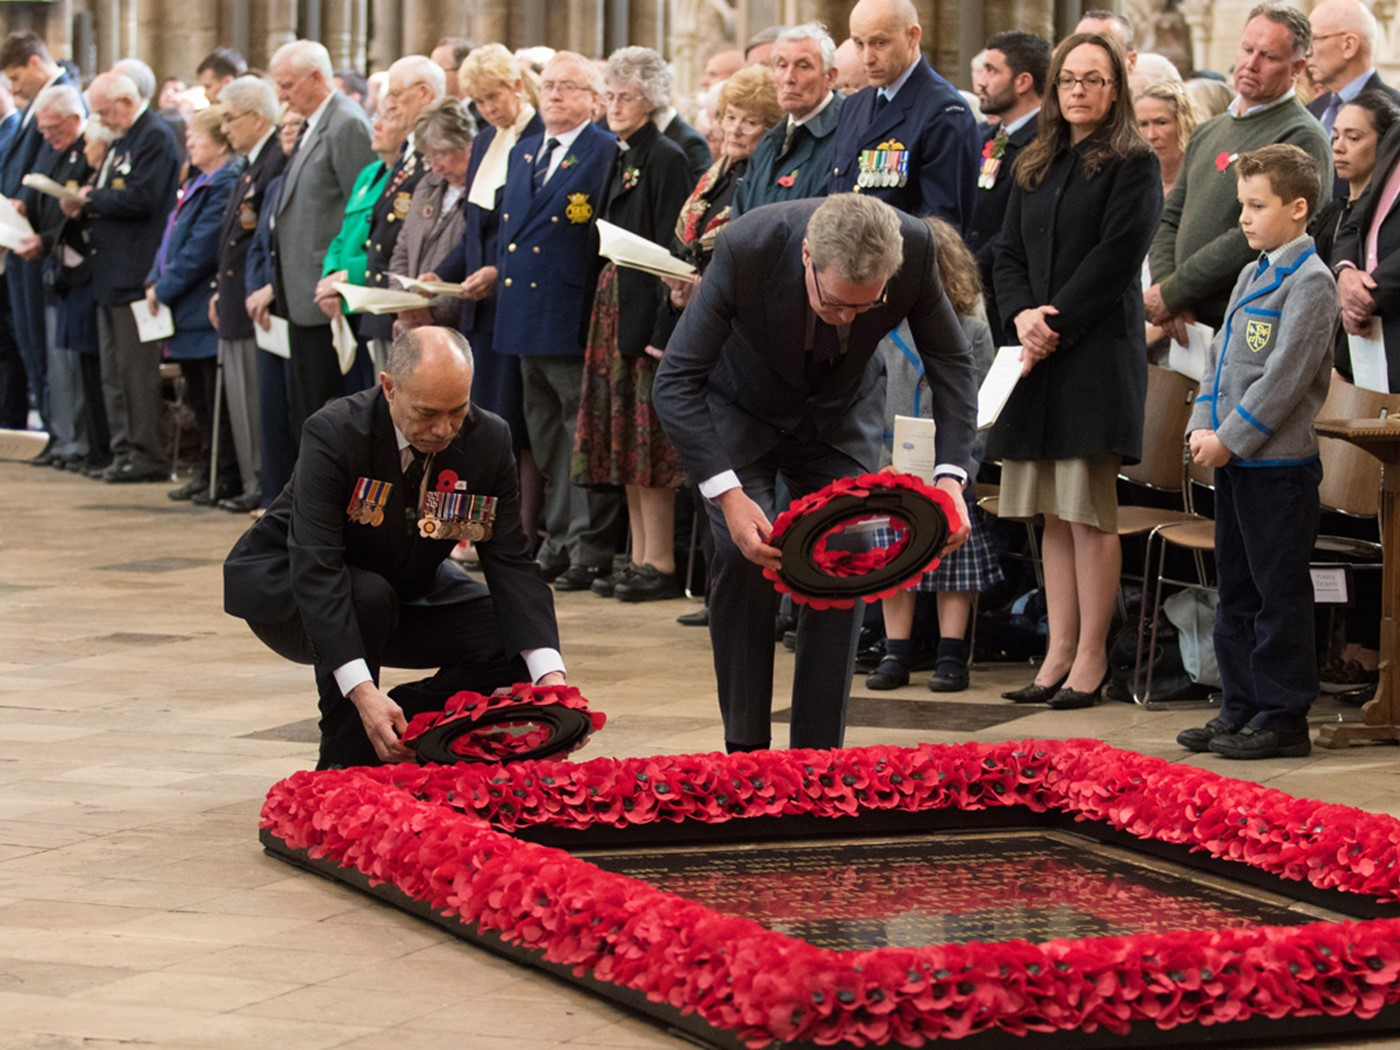 The High Commissioners for New Zealand and Australia lay wreaths at the Grave of the Unknown Warrior